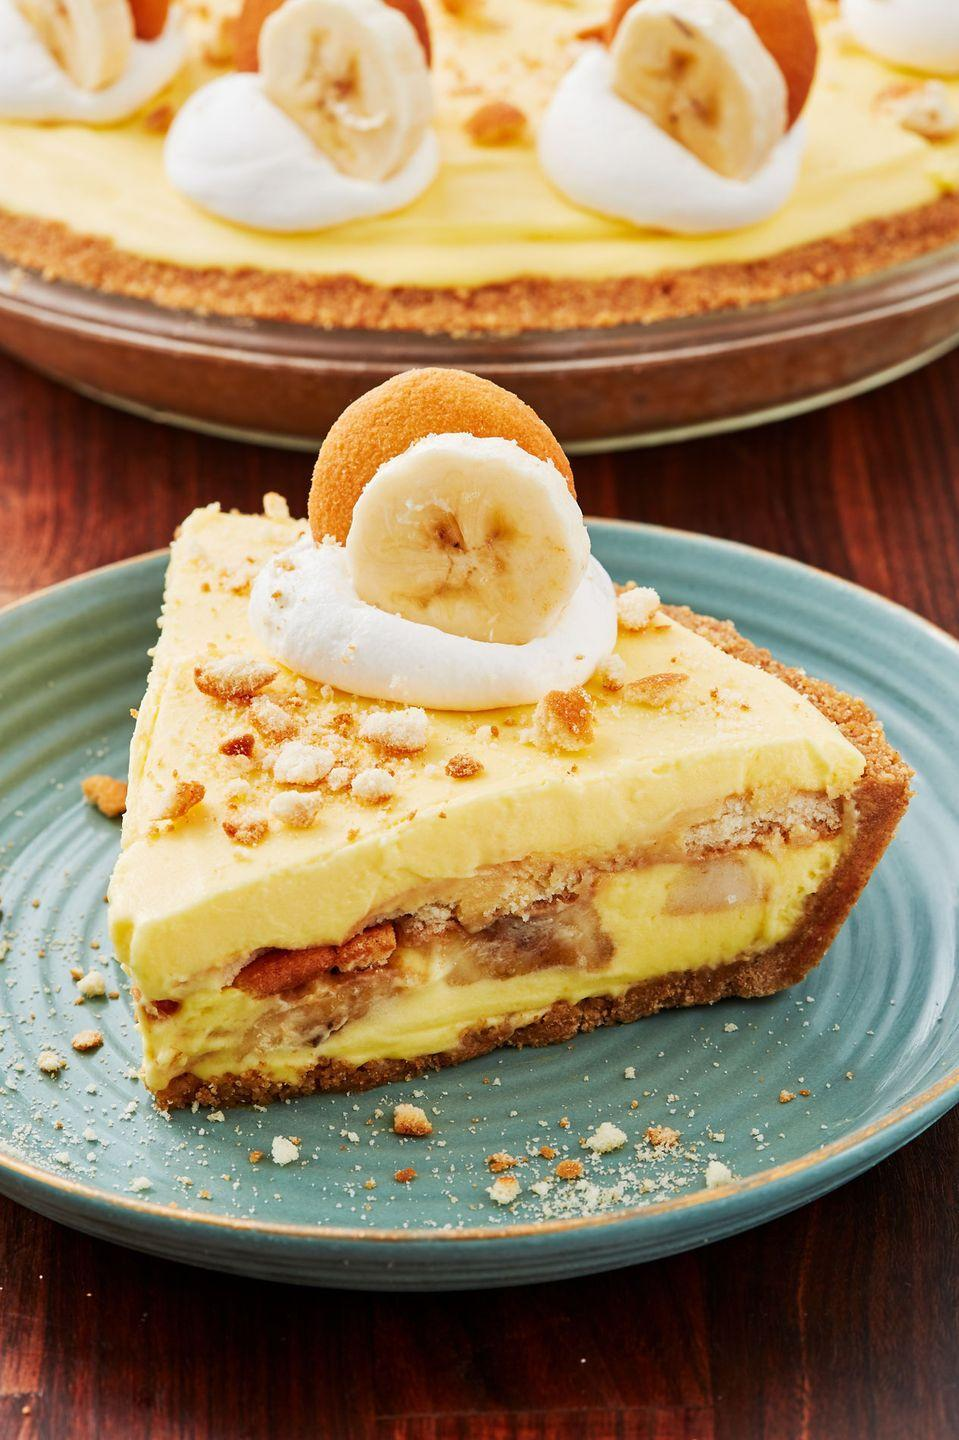 """<p>When two of your favorite desserts become one.</p><p>Get the recipe from <a href=""""https://www.delish.com/cooking/recipe-ideas/recipes/a52780/banana-pudding-cheesecake-recipe/"""" rel=""""nofollow noopener"""" target=""""_blank"""" data-ylk=""""slk:Delish"""" class=""""link rapid-noclick-resp"""">Delish</a>.</p>"""